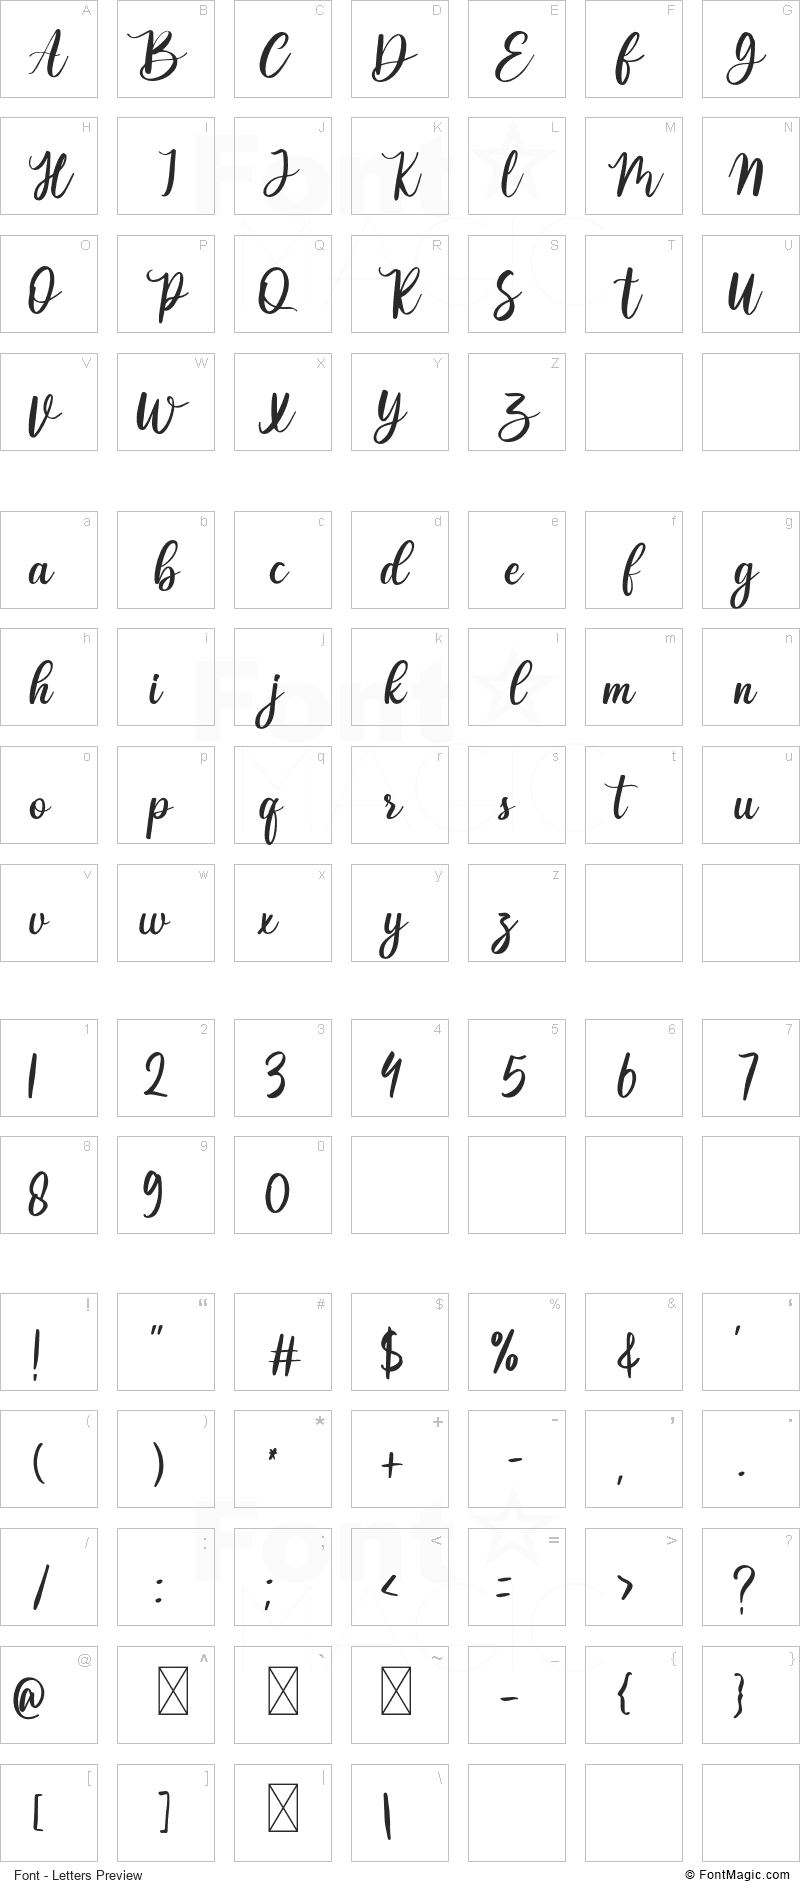 Valentime Font - All Latters Preview Chart